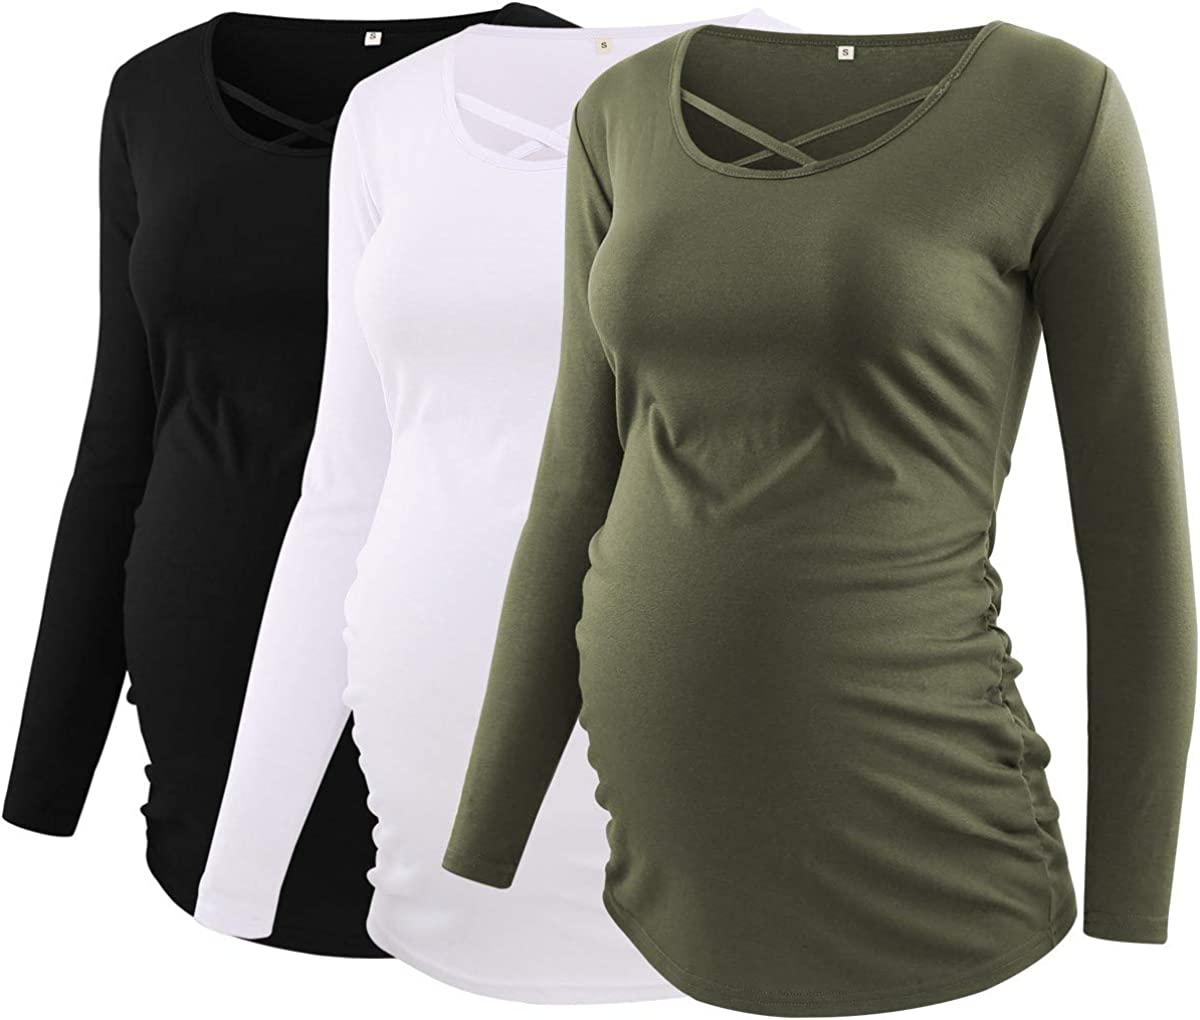 Love2Mi Womens Maternity Tops Long Sleeve Pregnancy T-Shirt Criss Cross Classic Side Ruched Mama Clothes 3 Pack